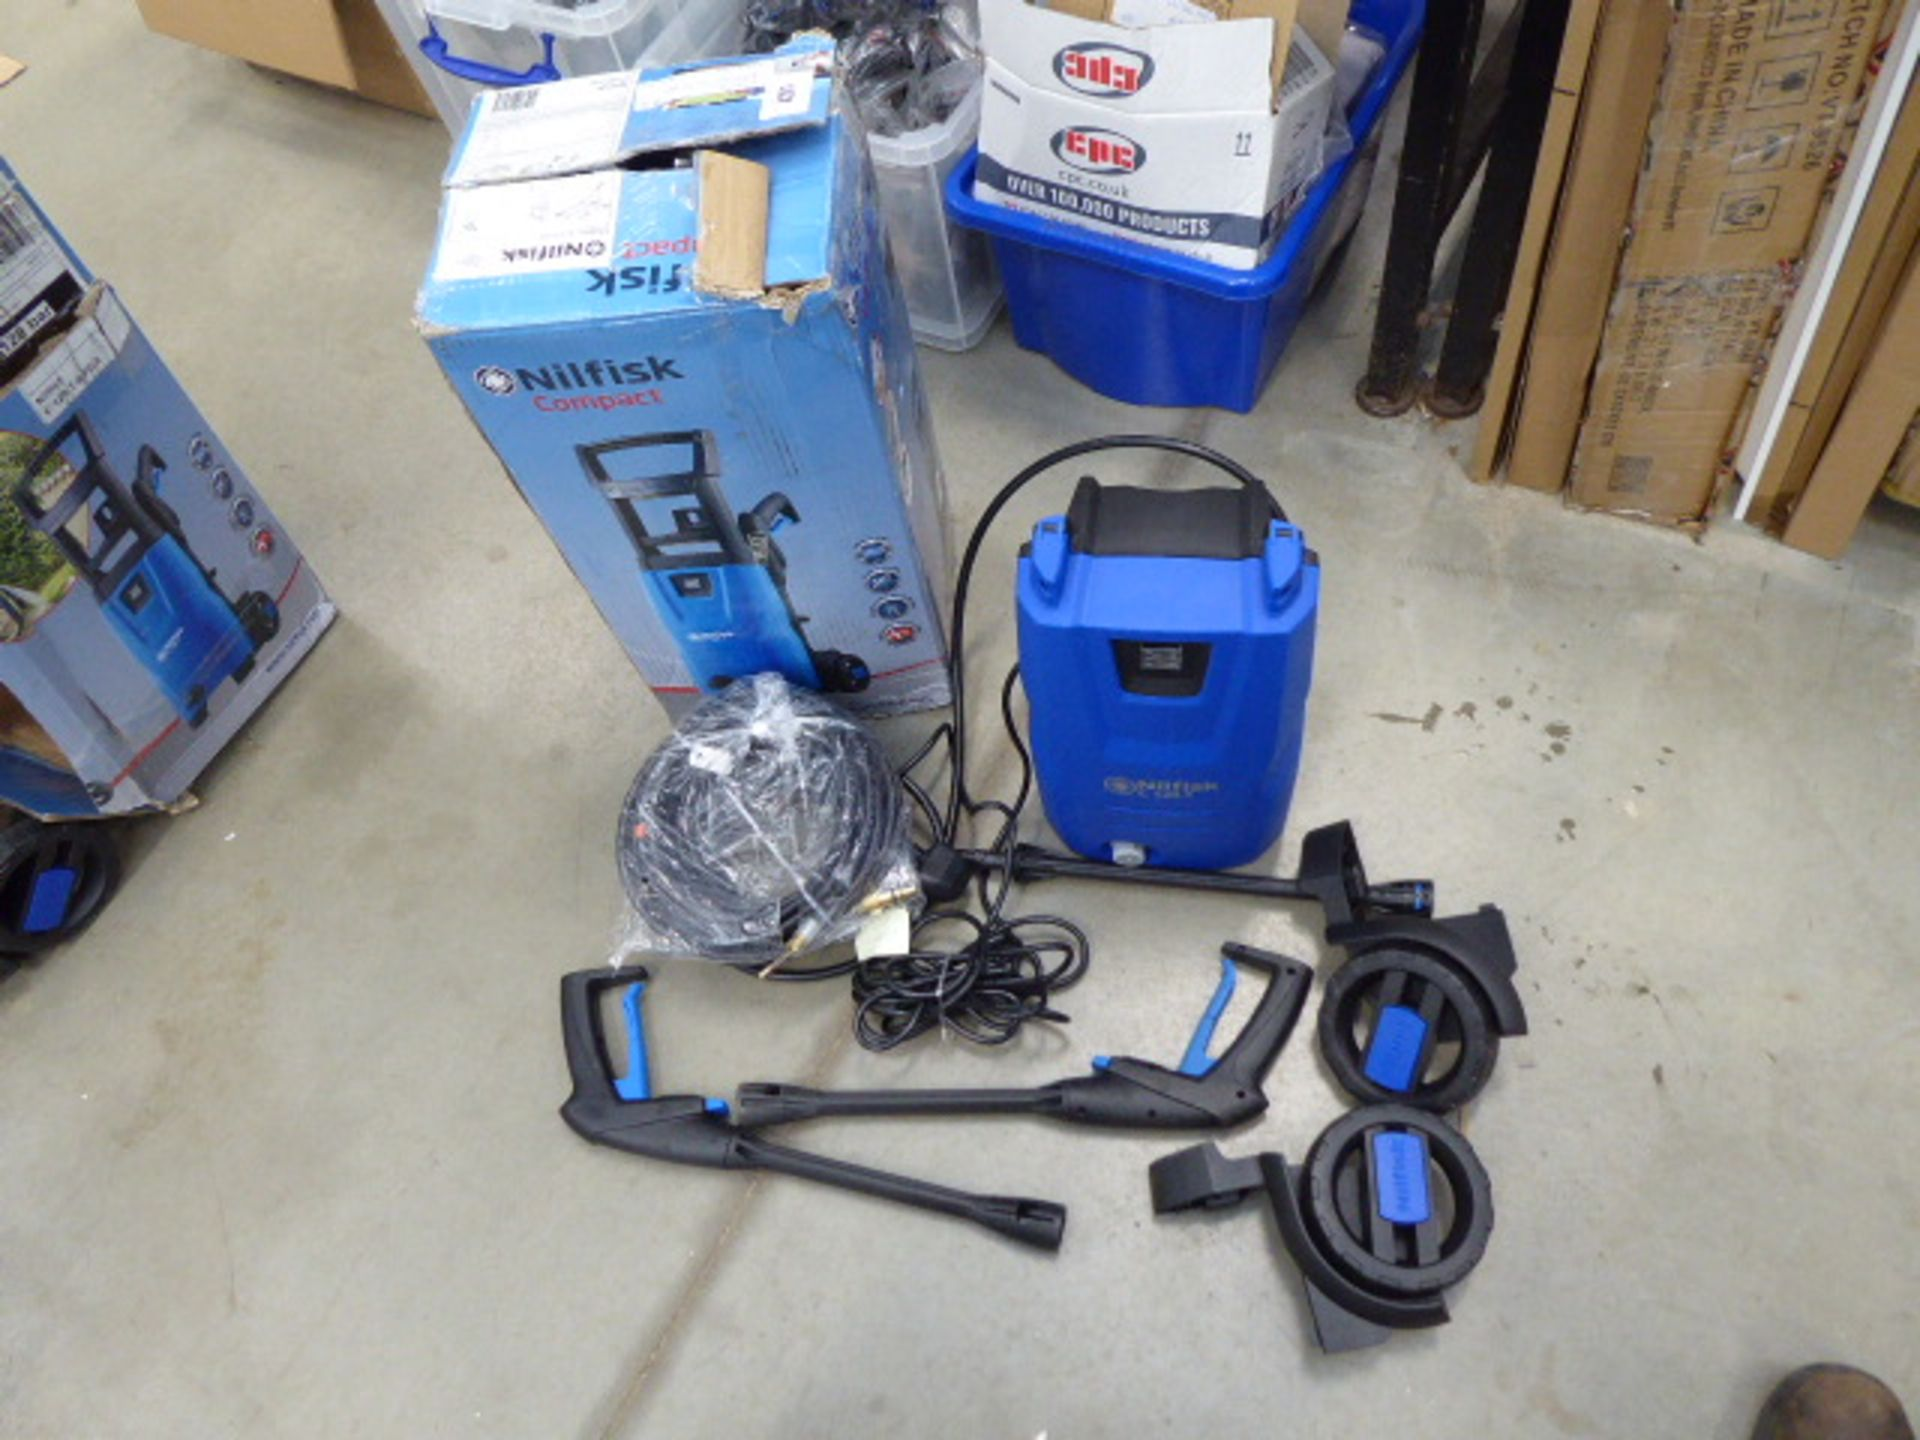 Small Nilfisk boxed pressure washer